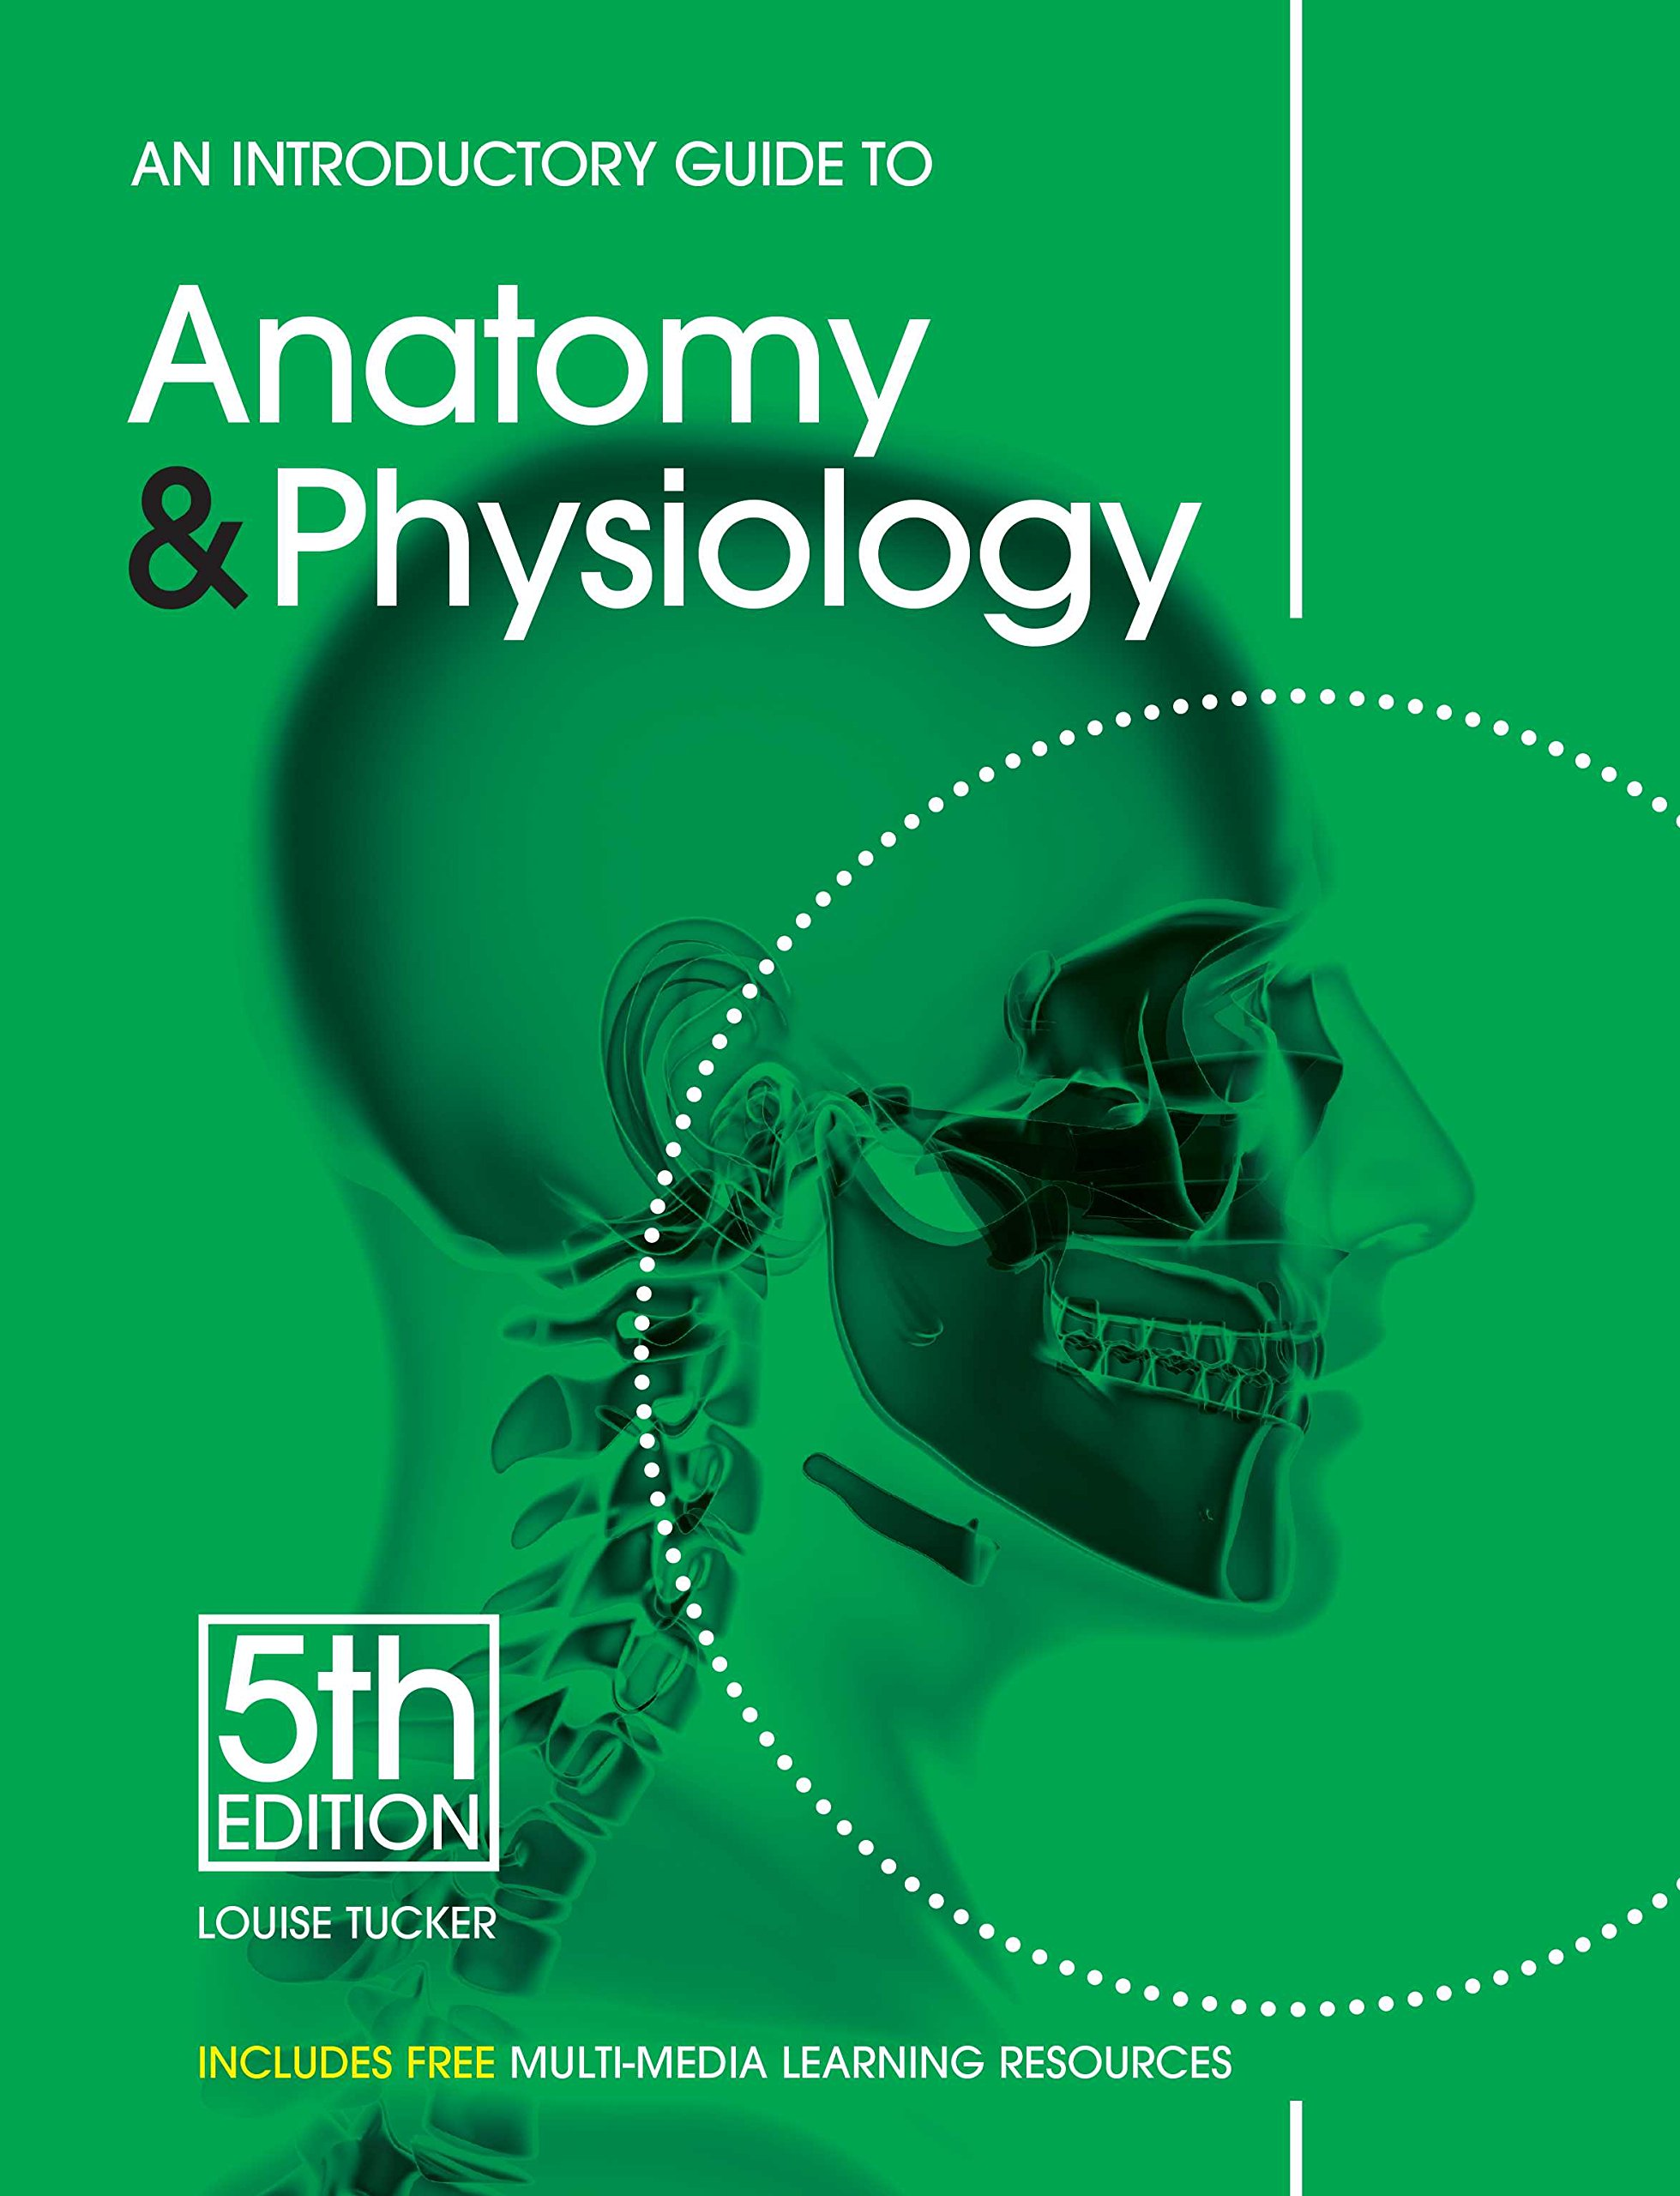 An Introductory Guide to Anatomy & Physiology: Louise Tucker ...